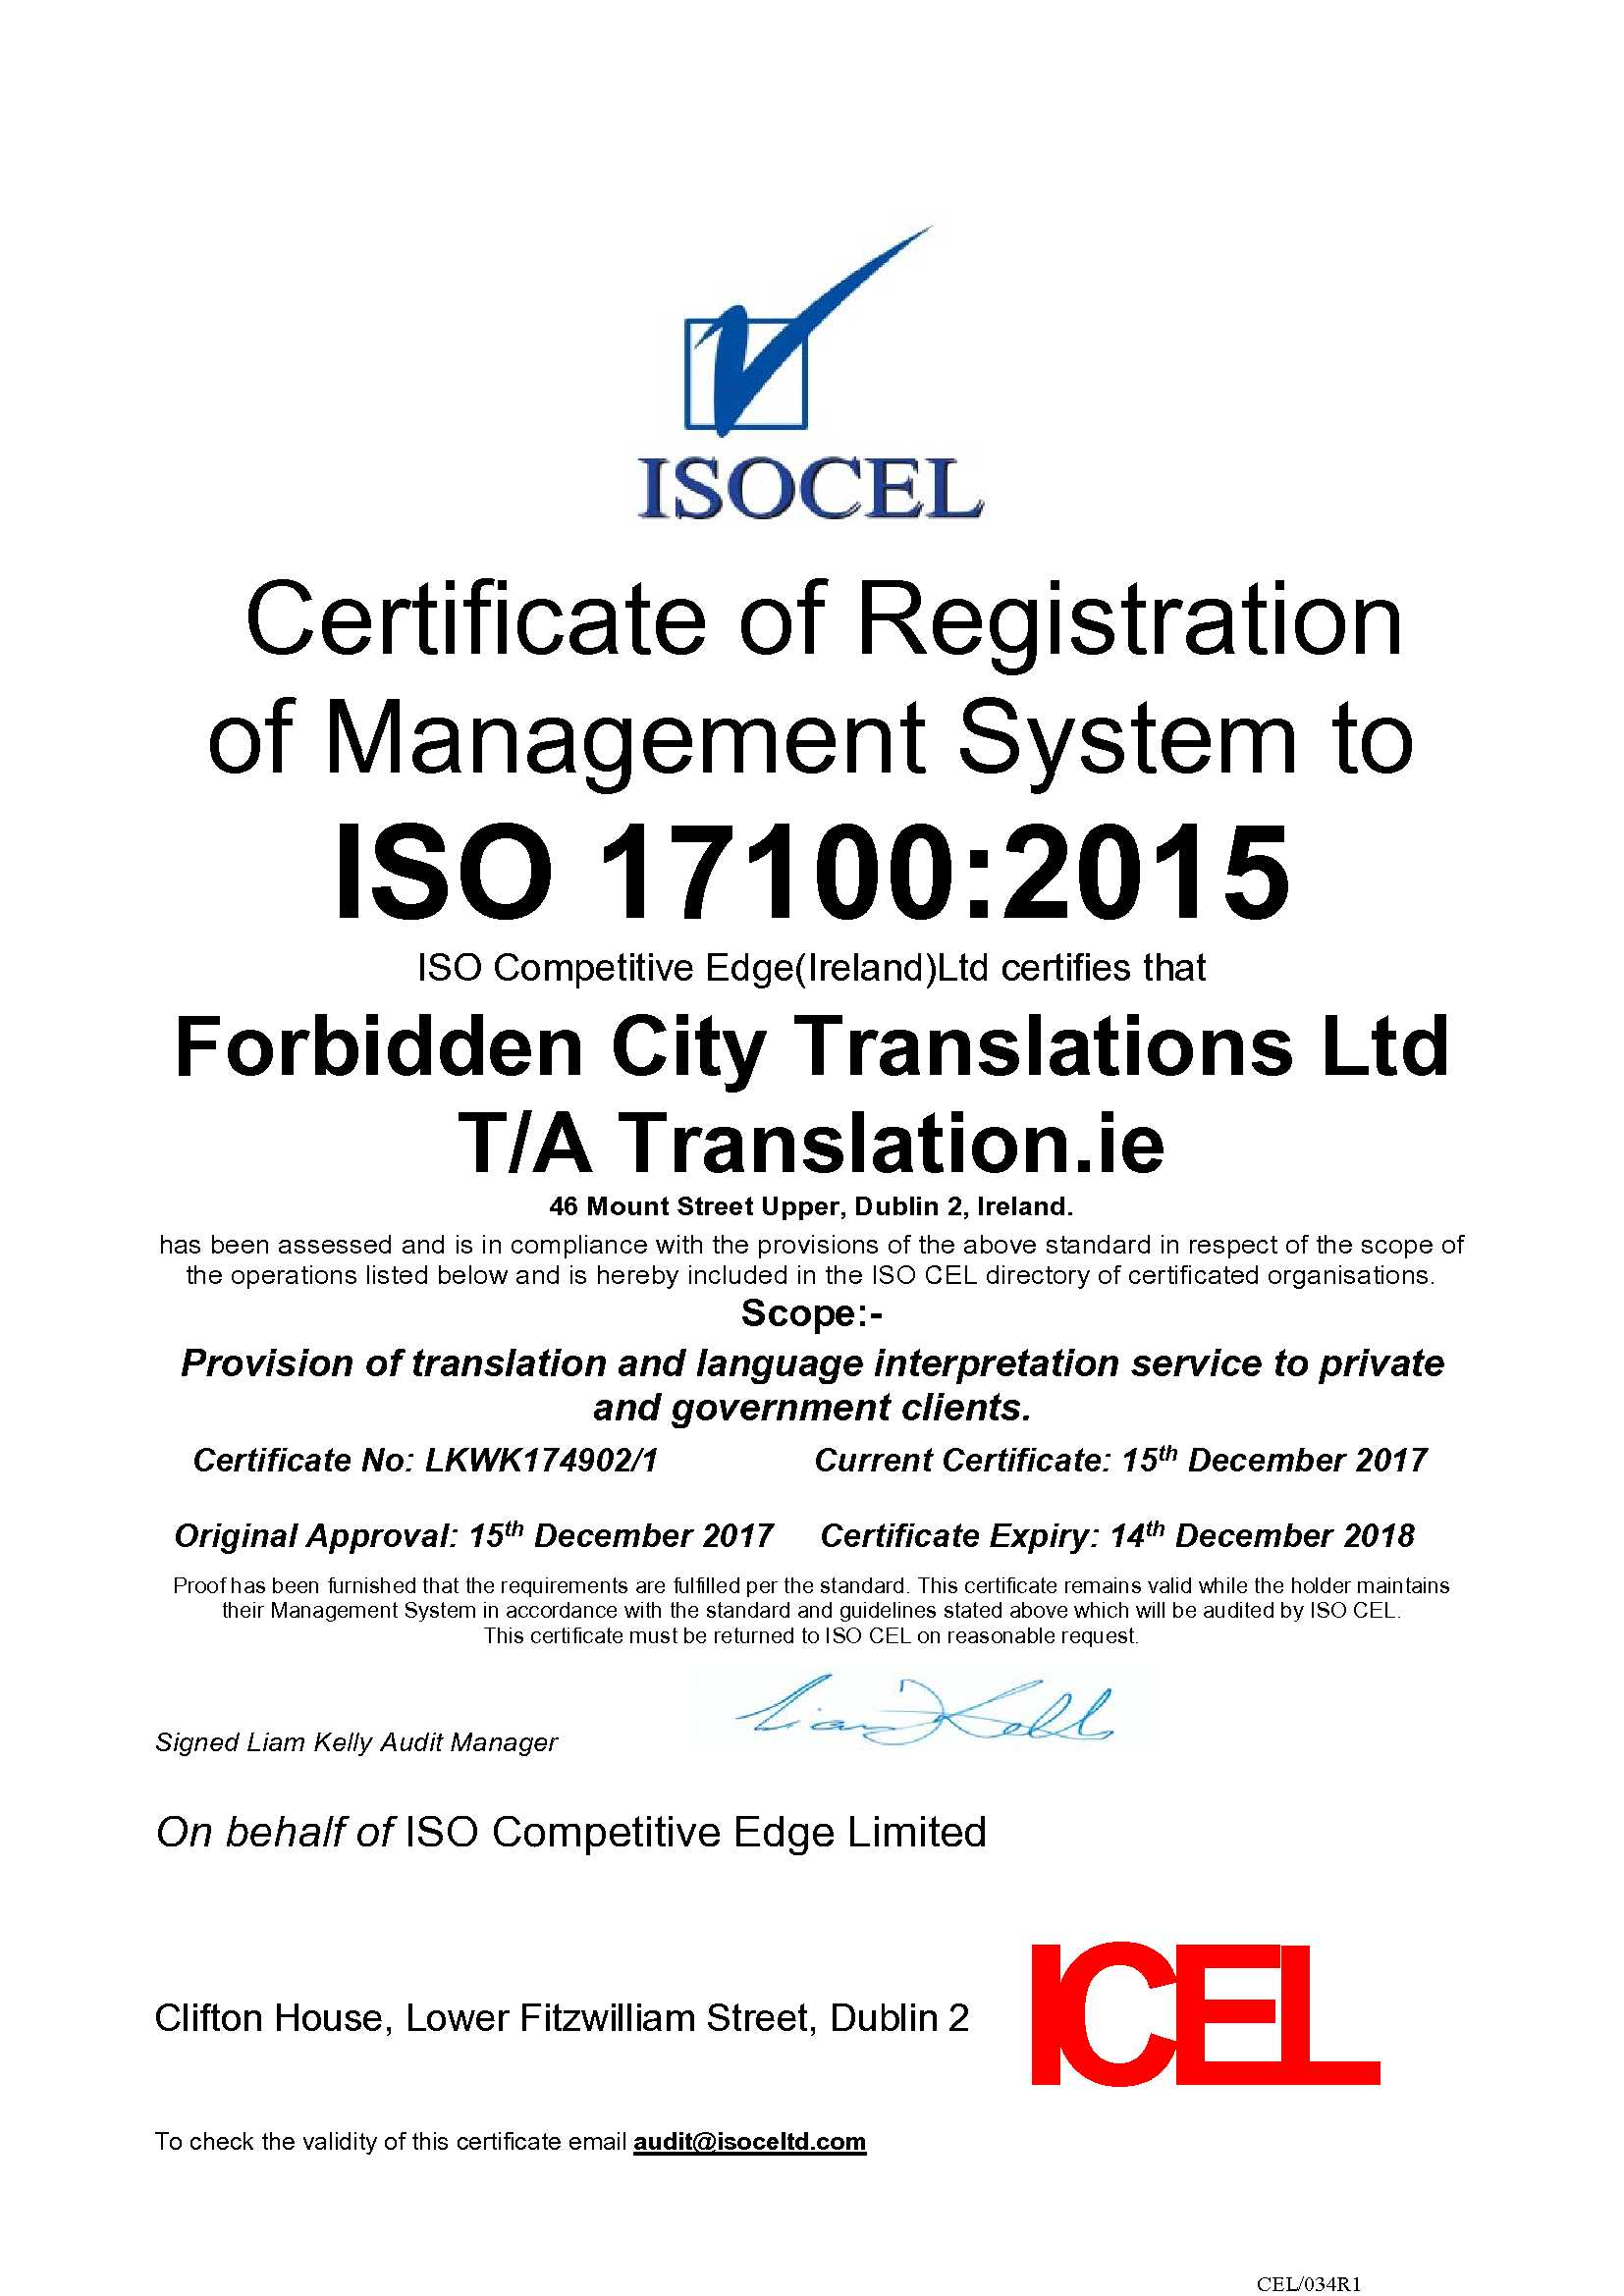 Translation.ie ISO 17100:2015 Cert